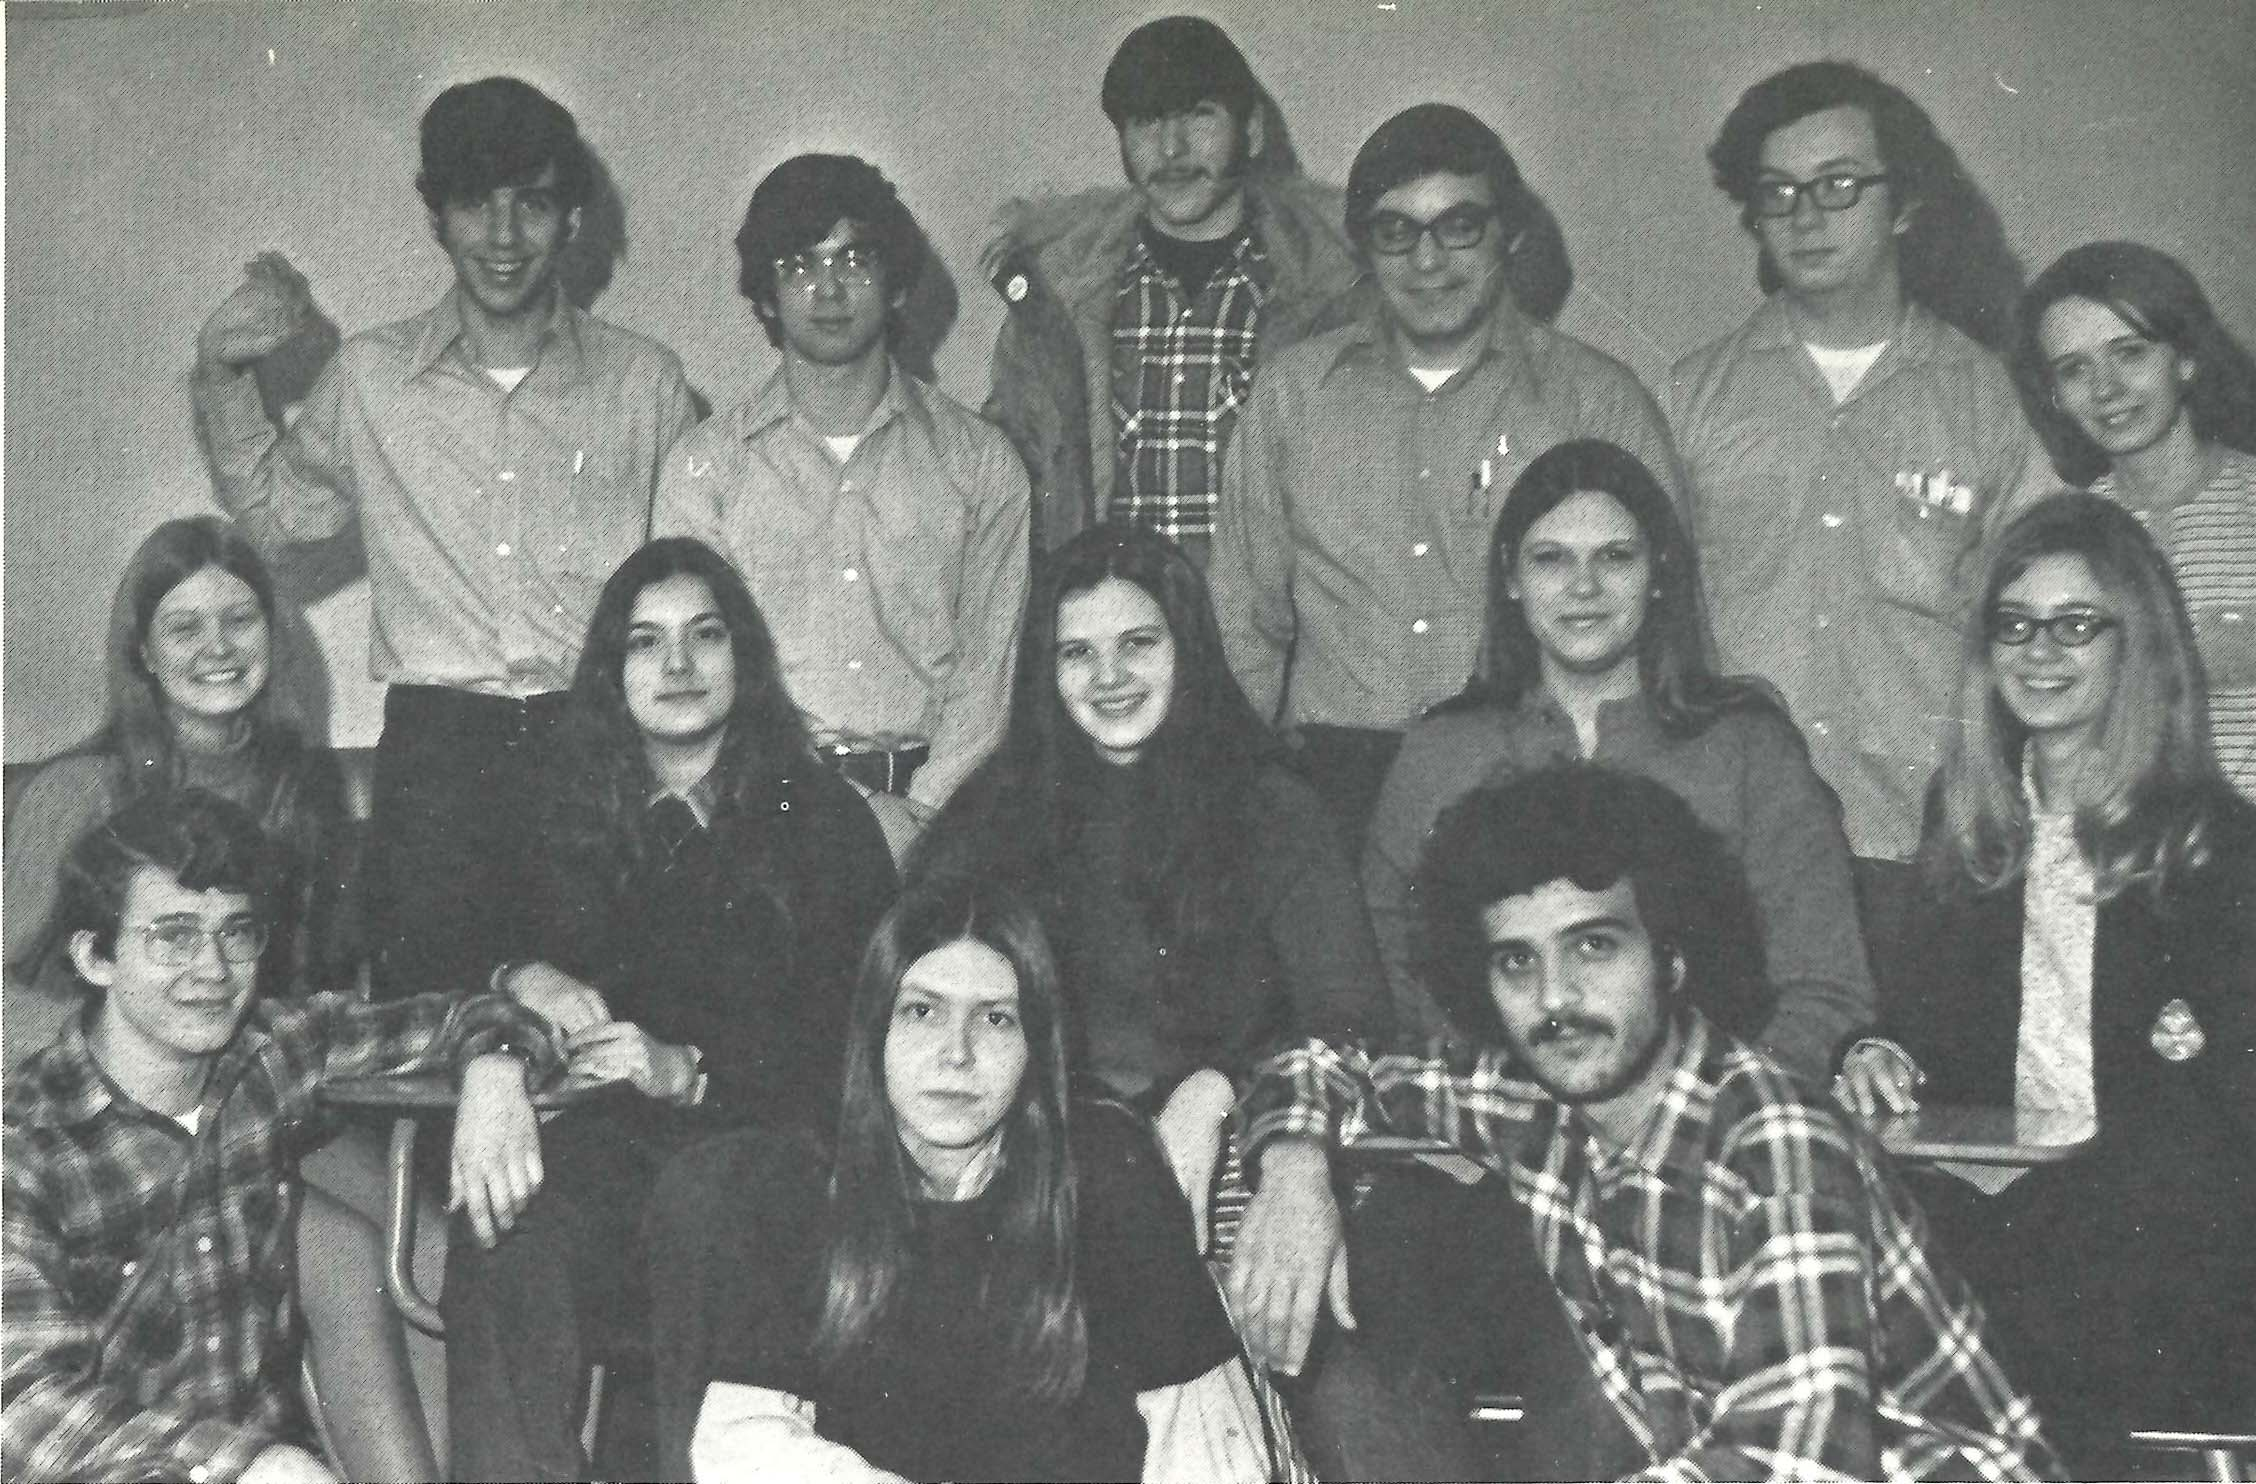 1972 Chronos yearbook staff